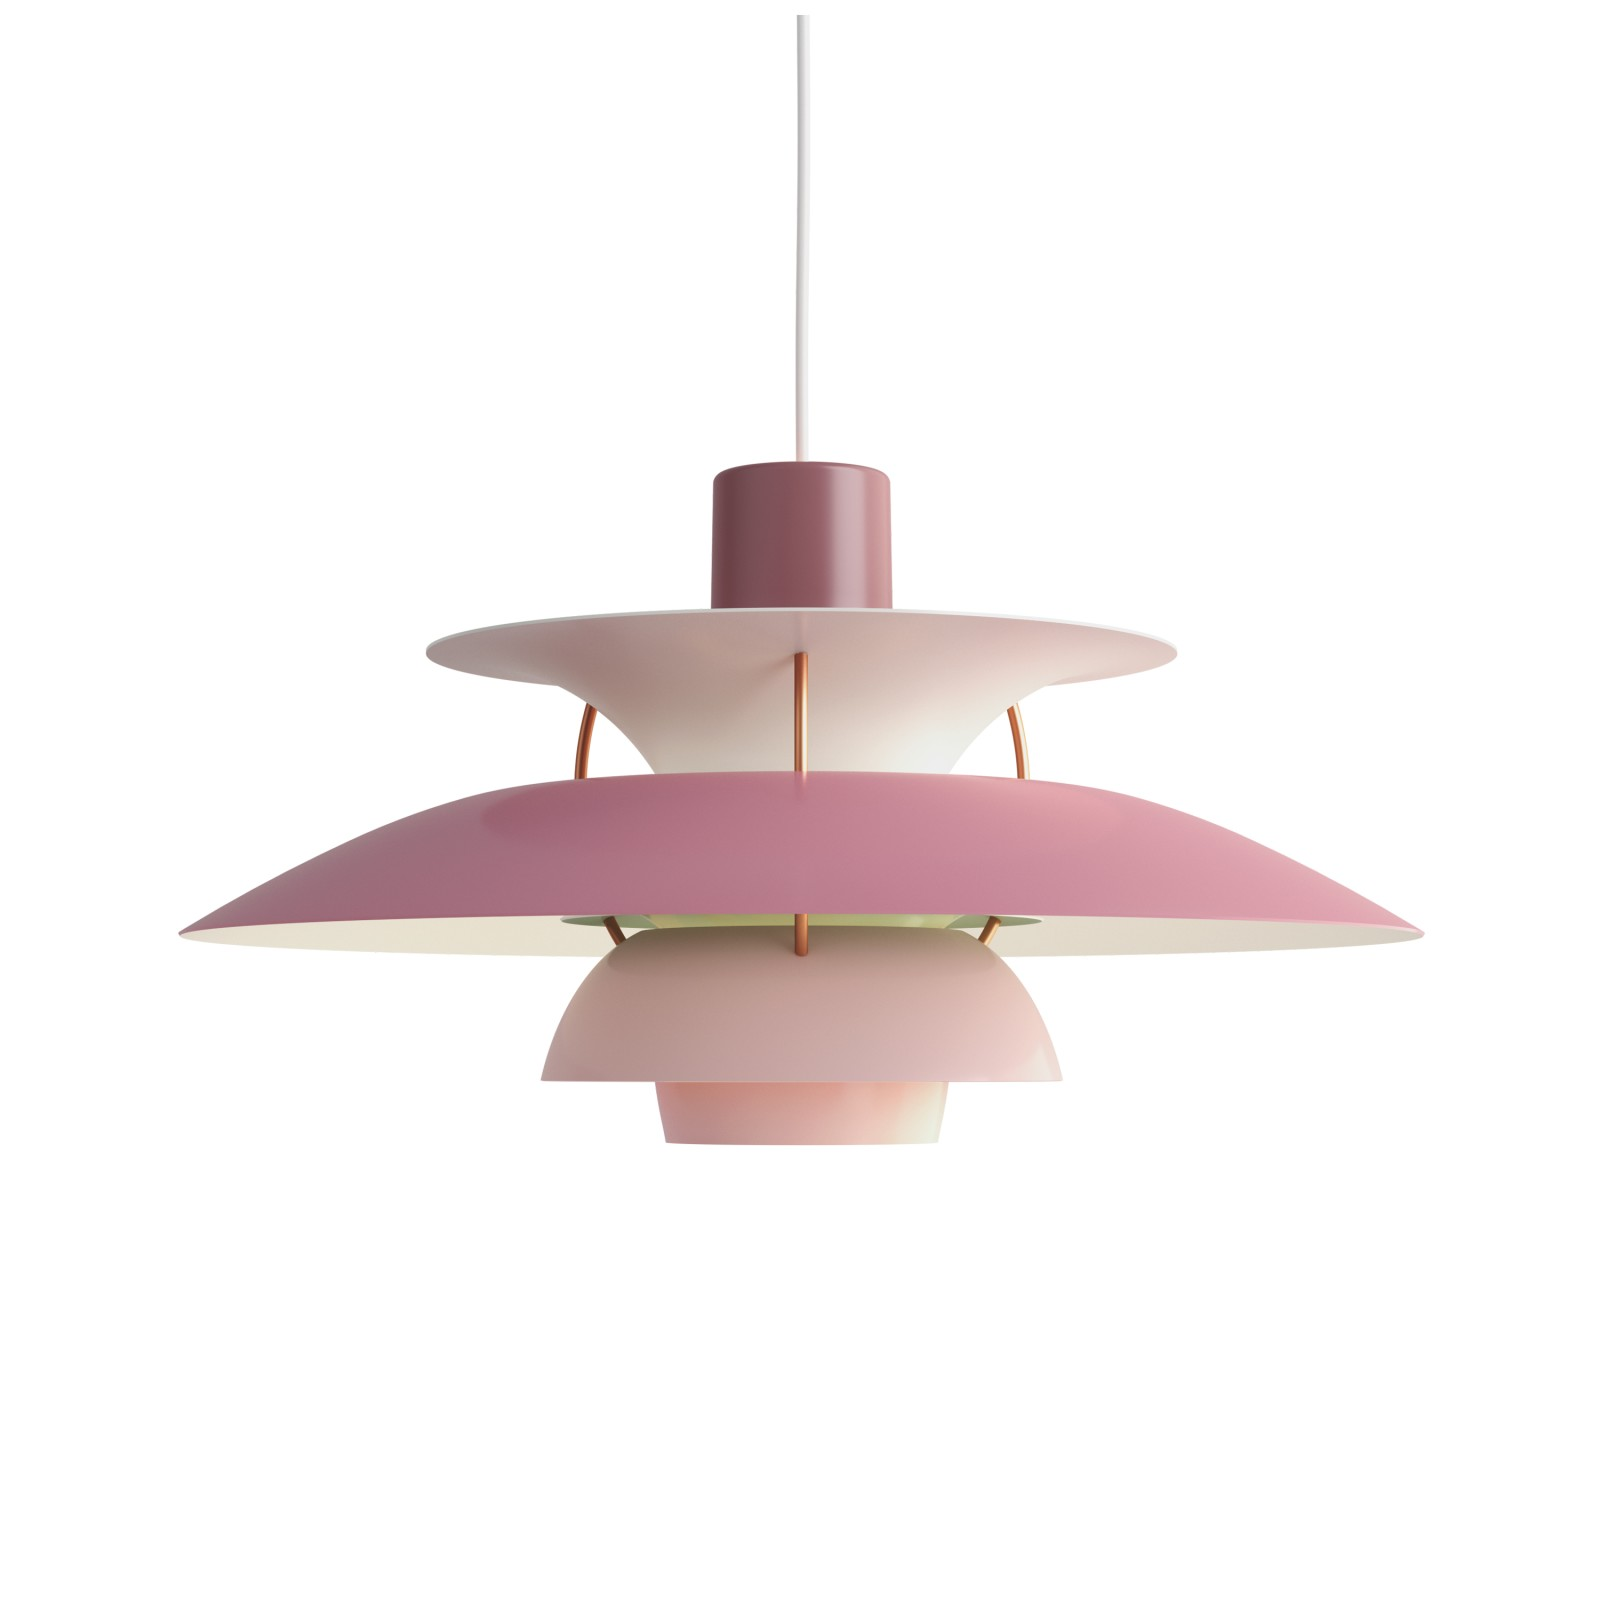 PH 5 Pendant Light Hues of Rose